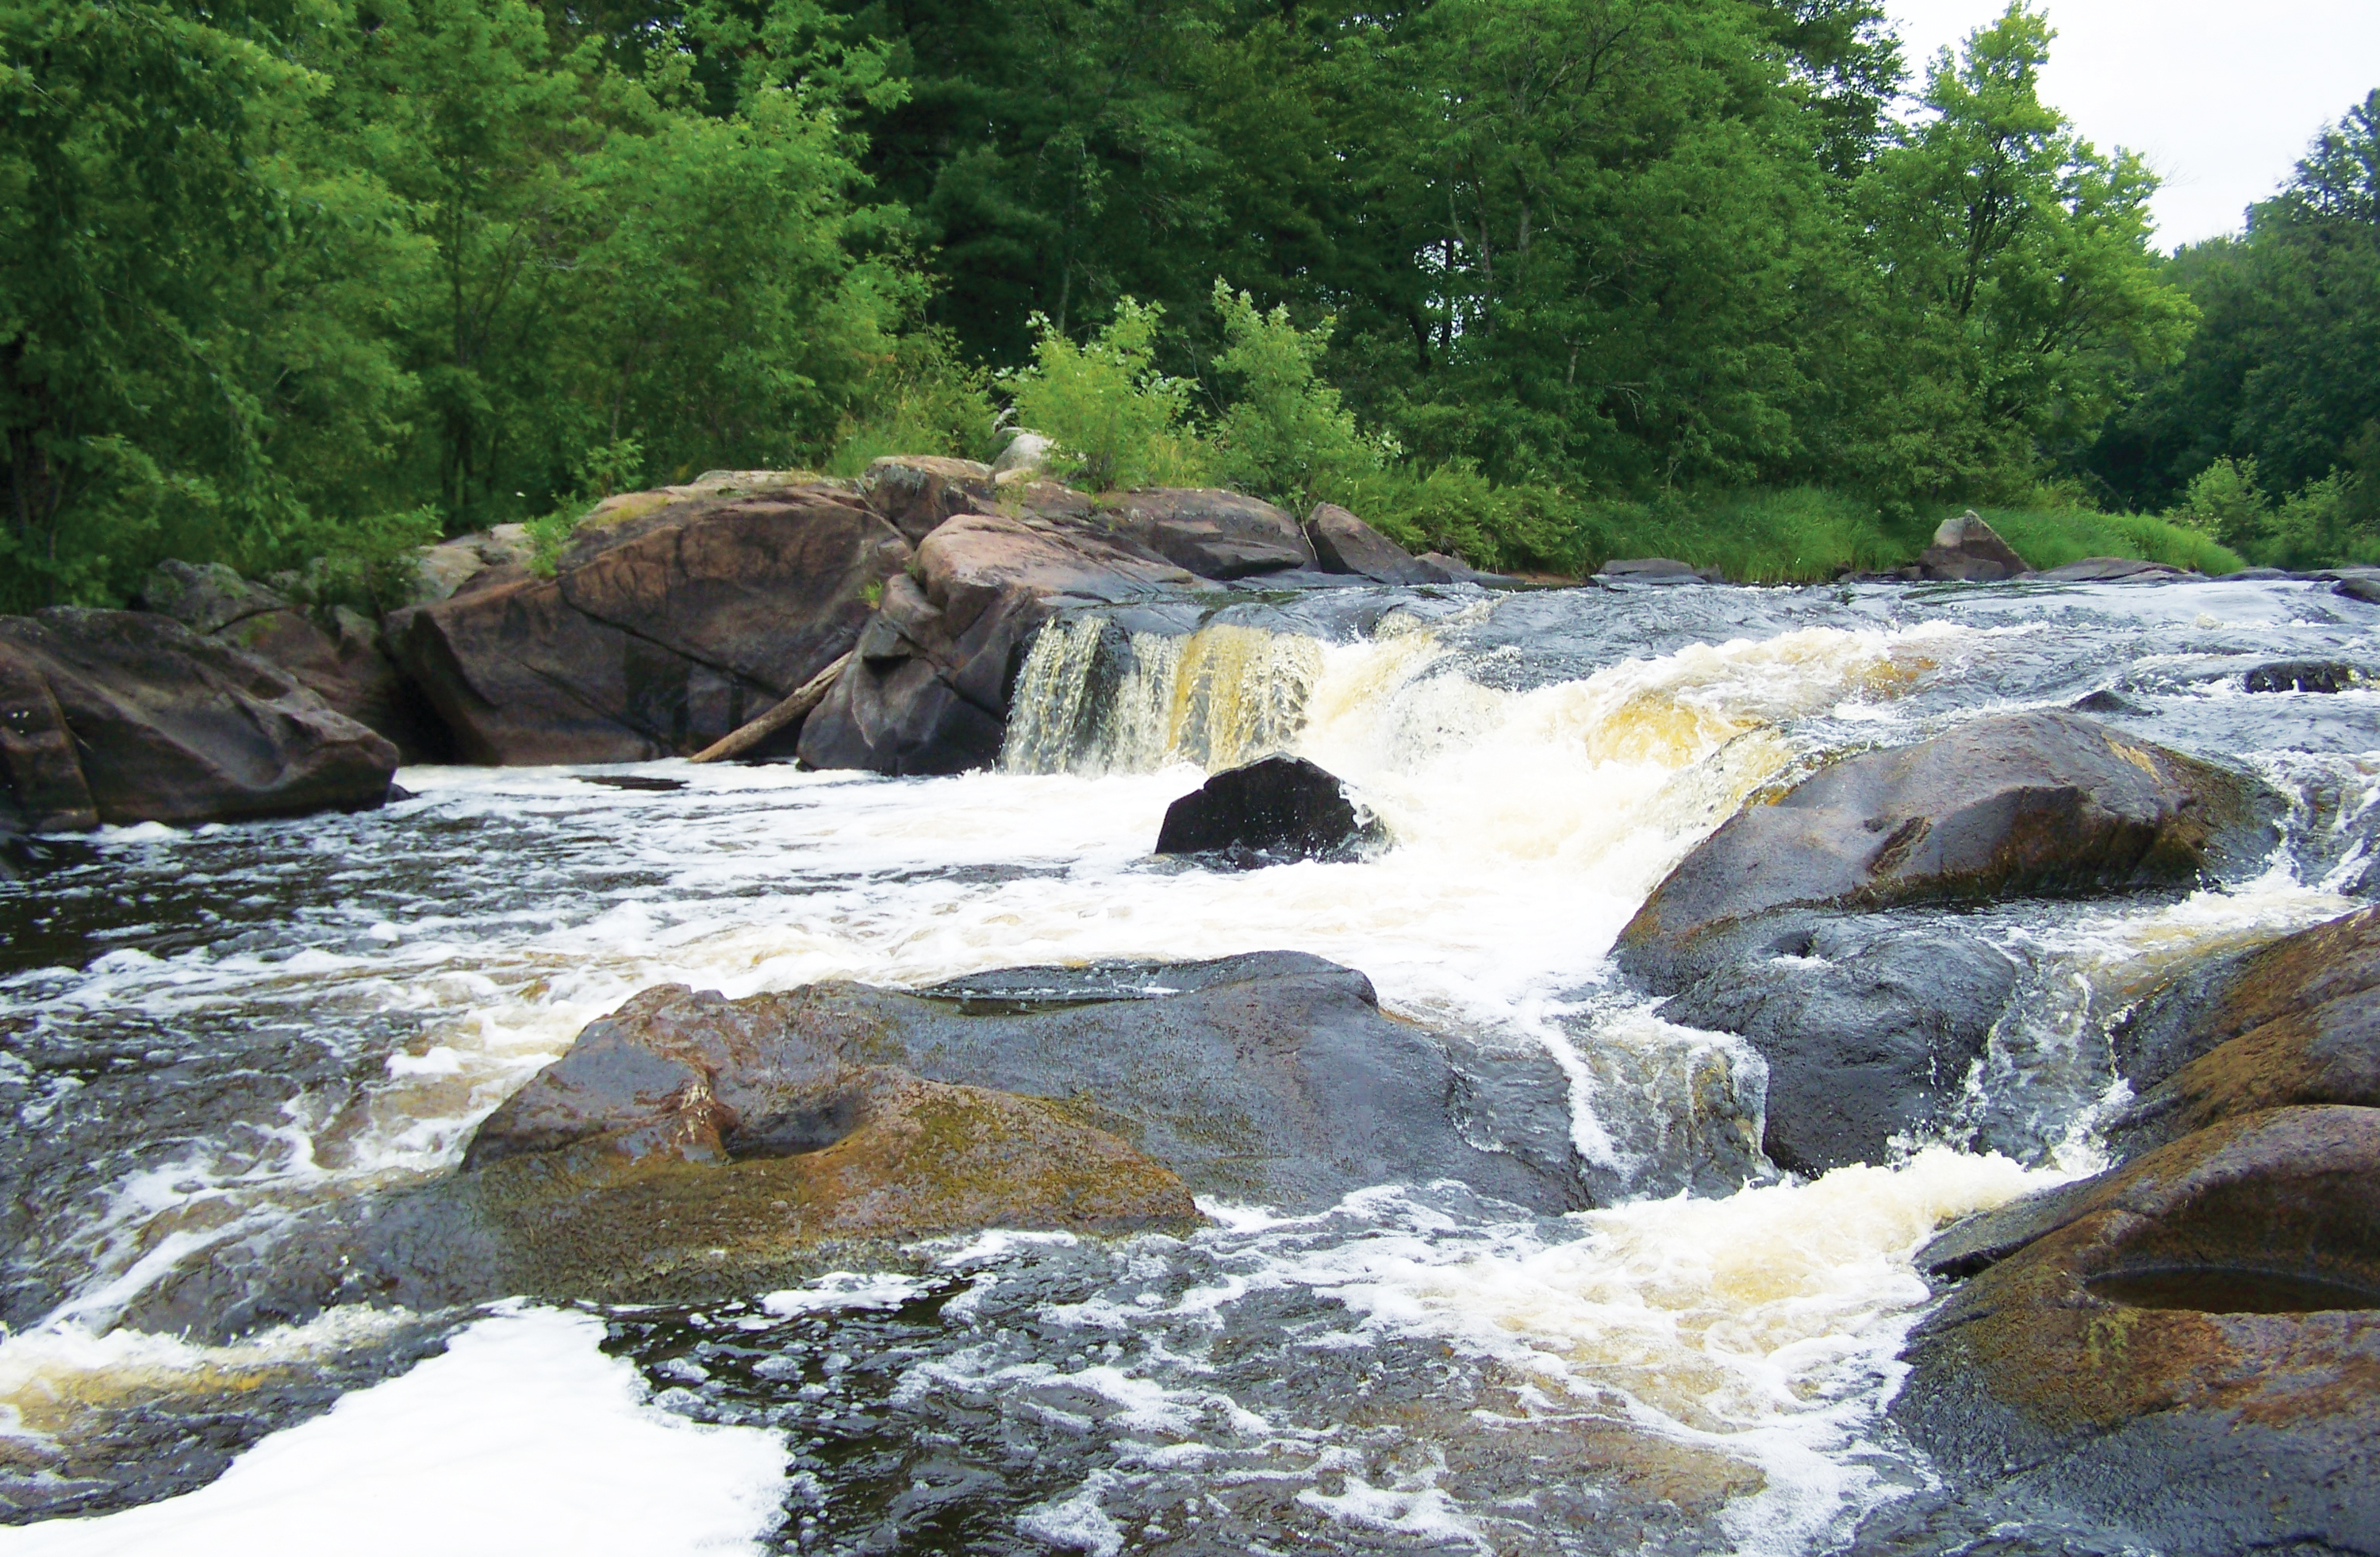 slough_gundy_little_falls_web